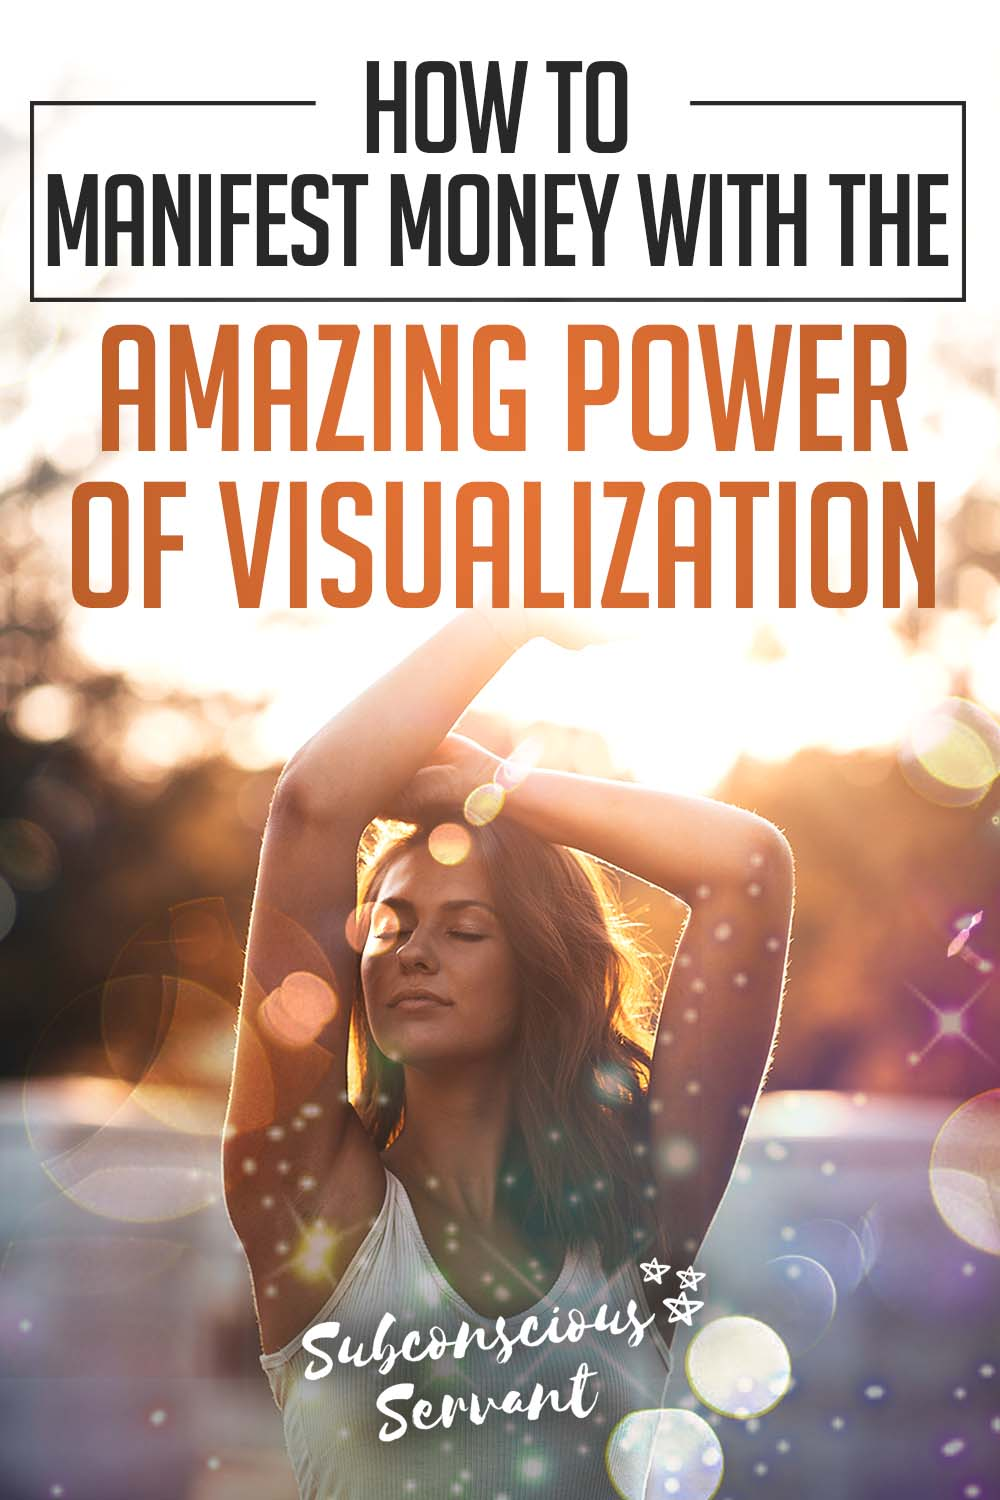 How To Manifest Money With The Amazing Power of Visualization